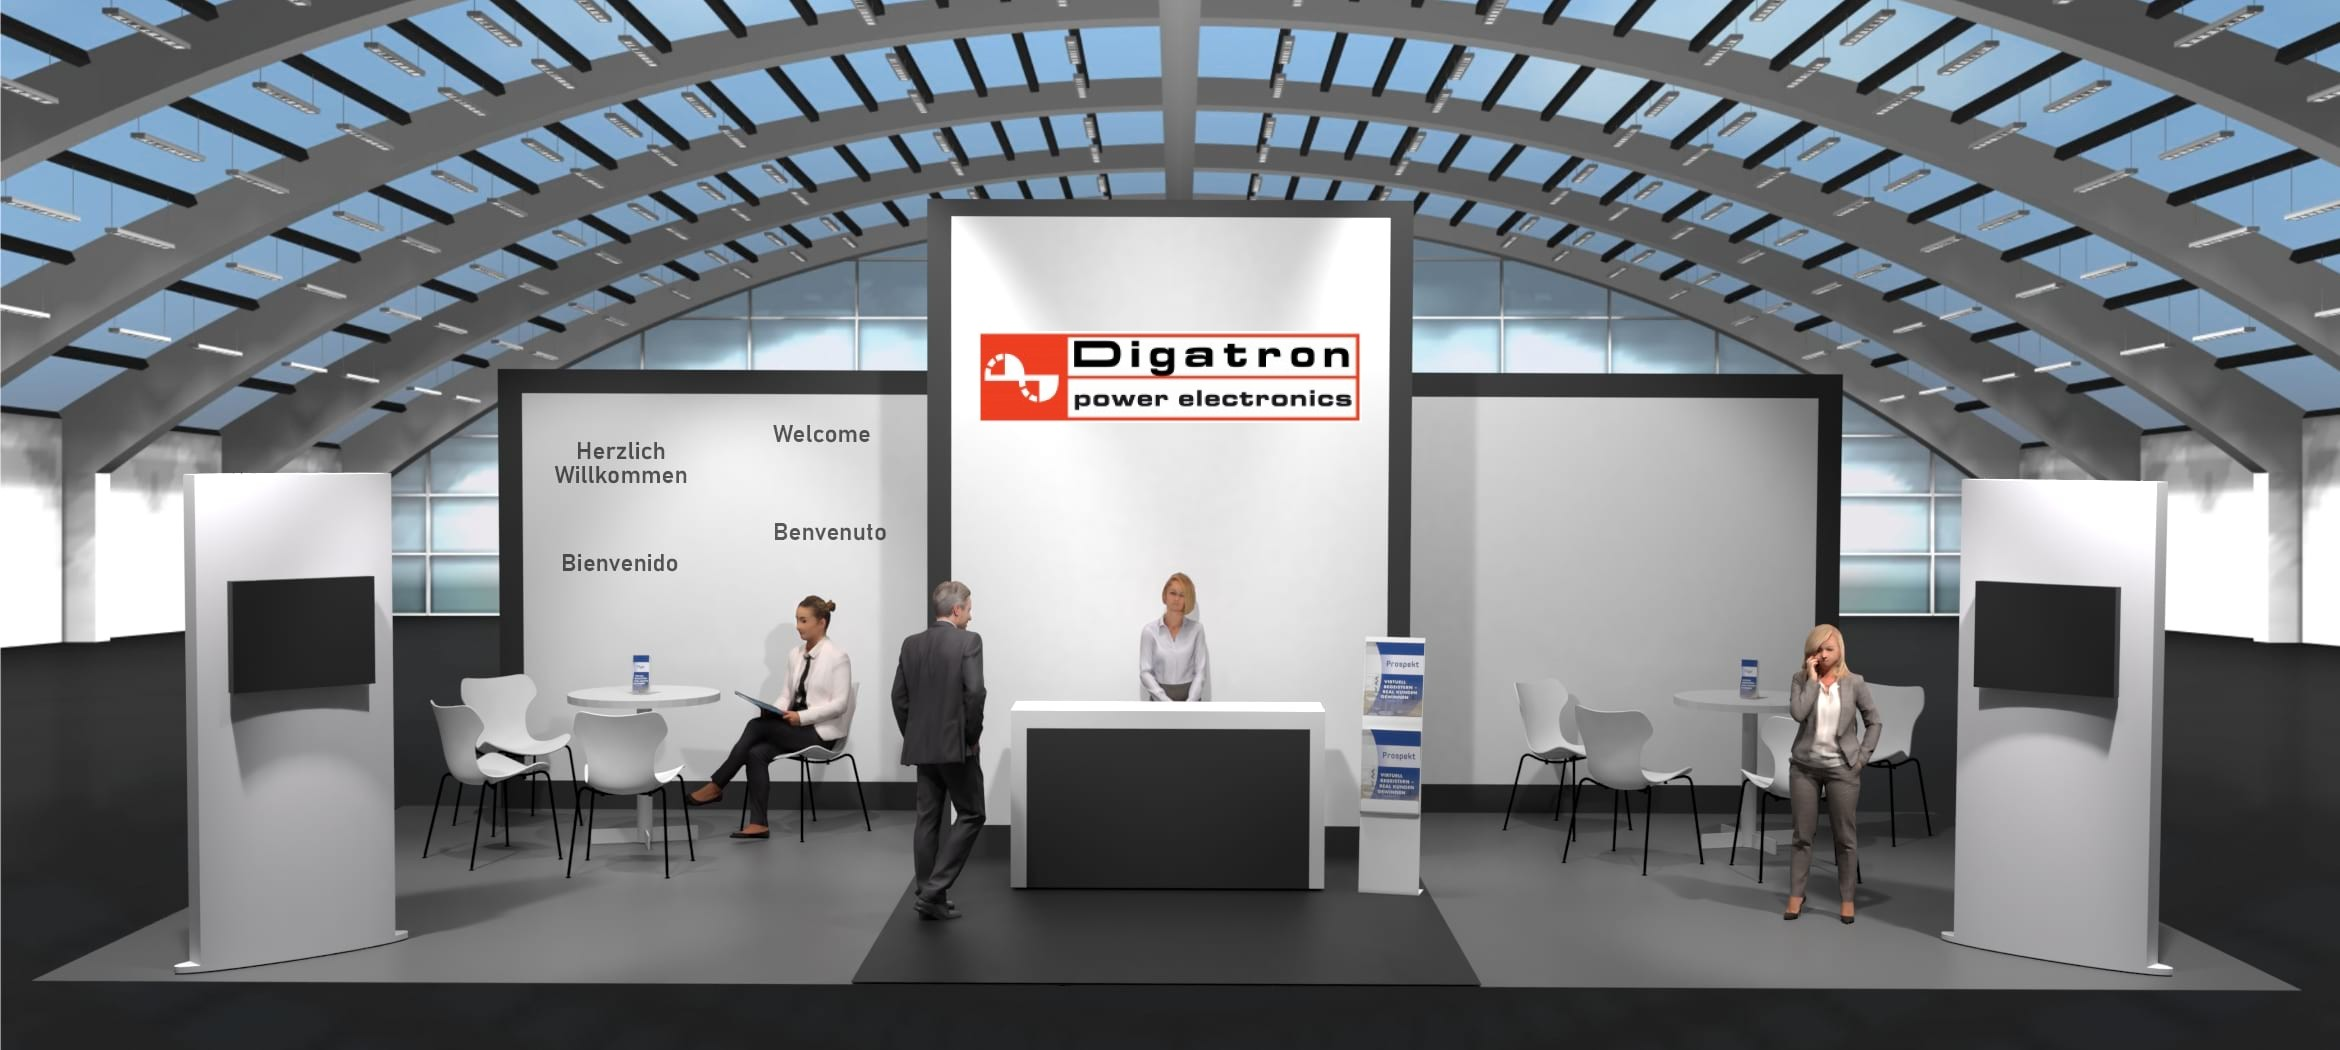 Digatron Power Electronics